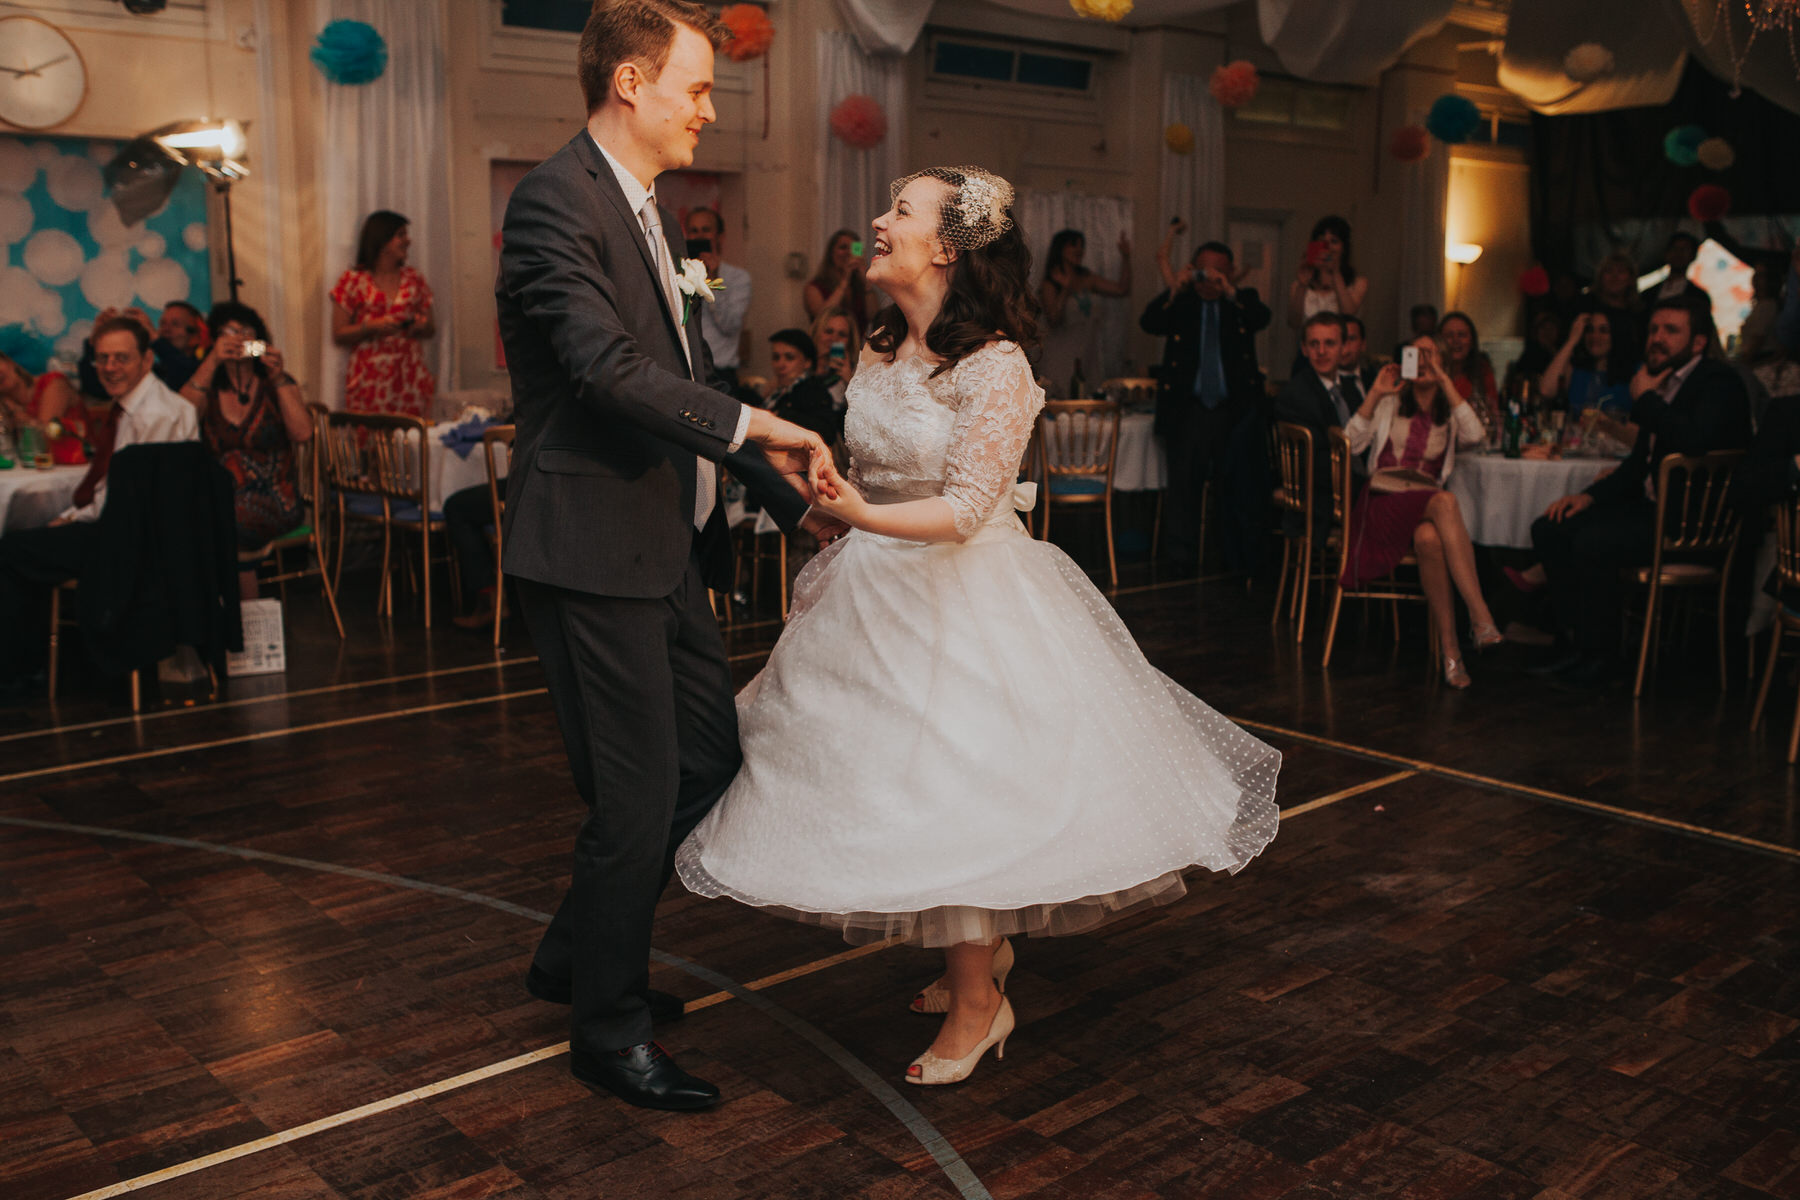 257 bride groom first dance school hall wedding reception London.jpg